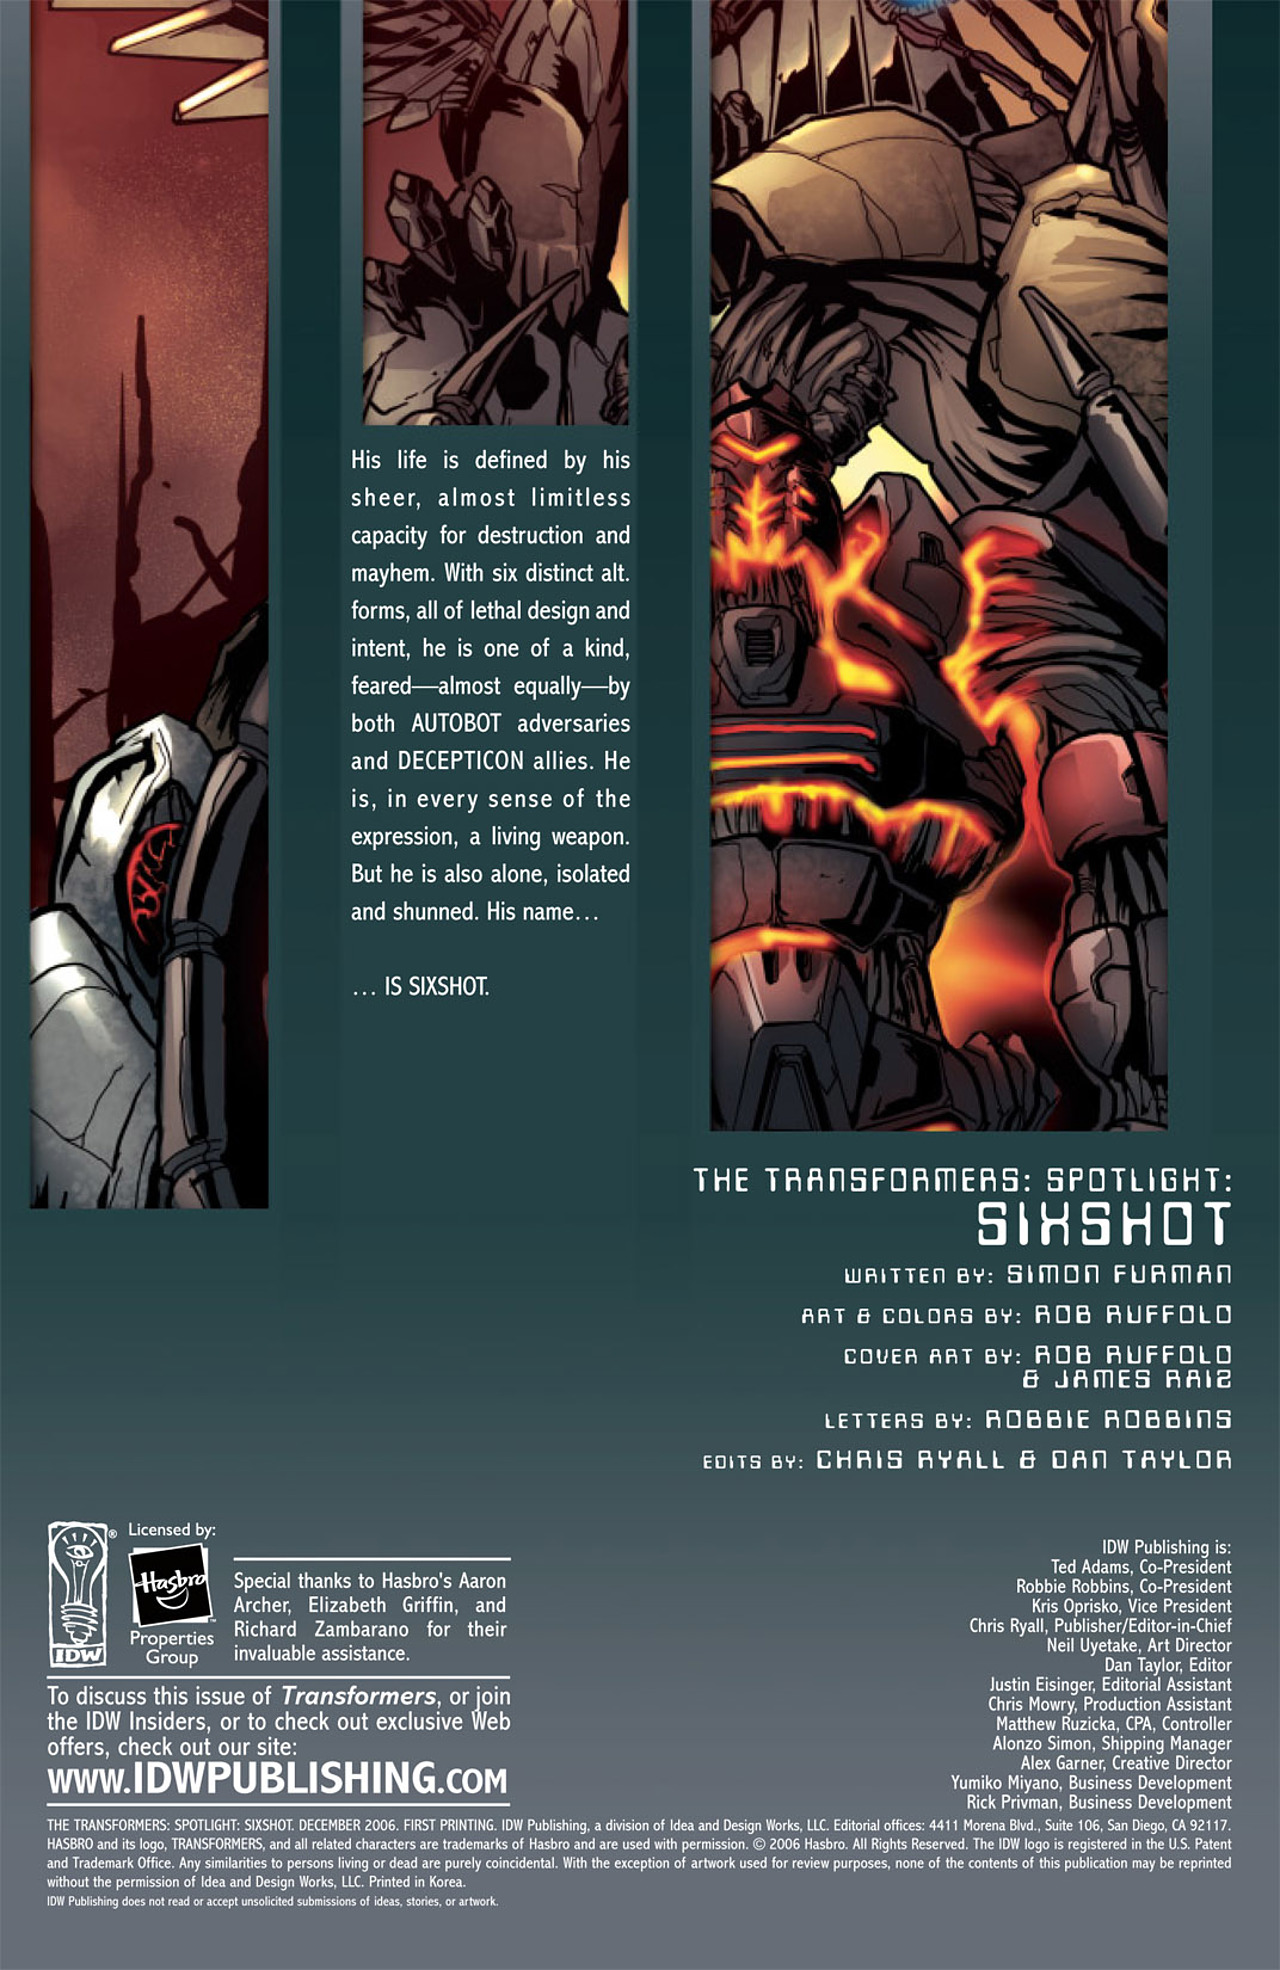 Read online Transformers Spotlight: Sixshot comic -  Issue # Full - 3